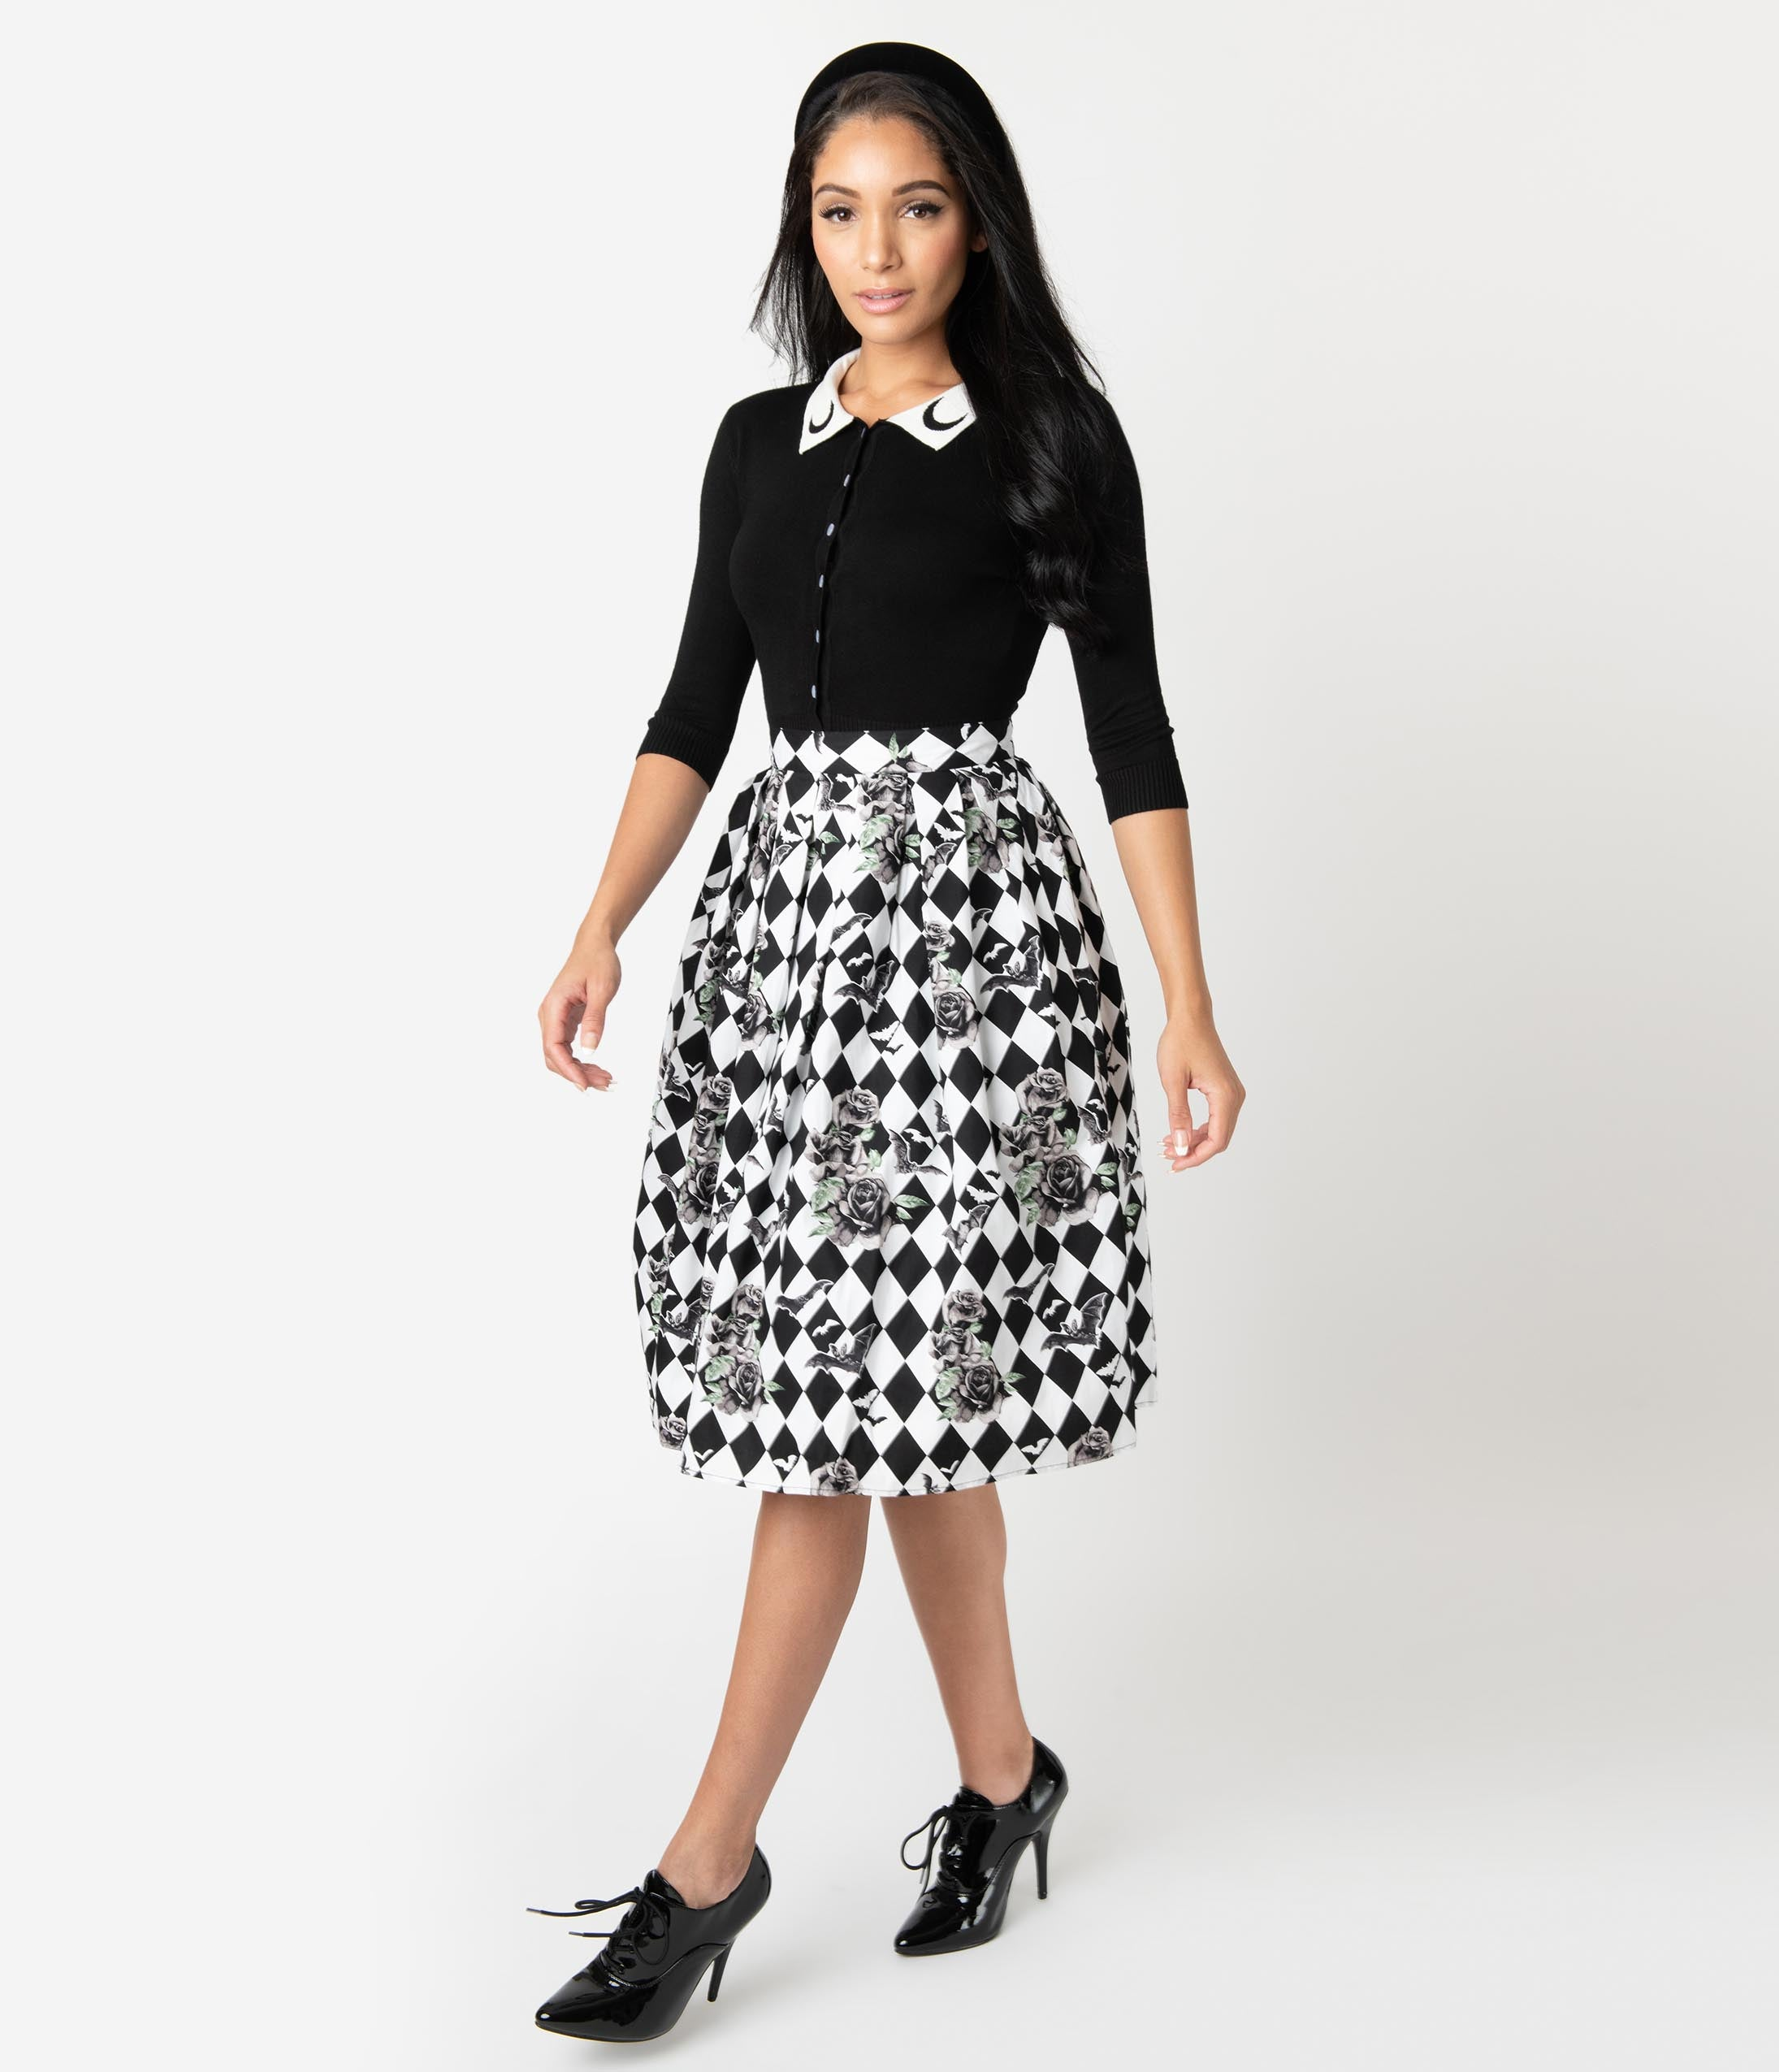 50 Vintage Halloween Costume Ideas Hell Bunny 1950S Black  White Checkered Hauntley Swing Skirt $54.00 AT vintagedancer.com